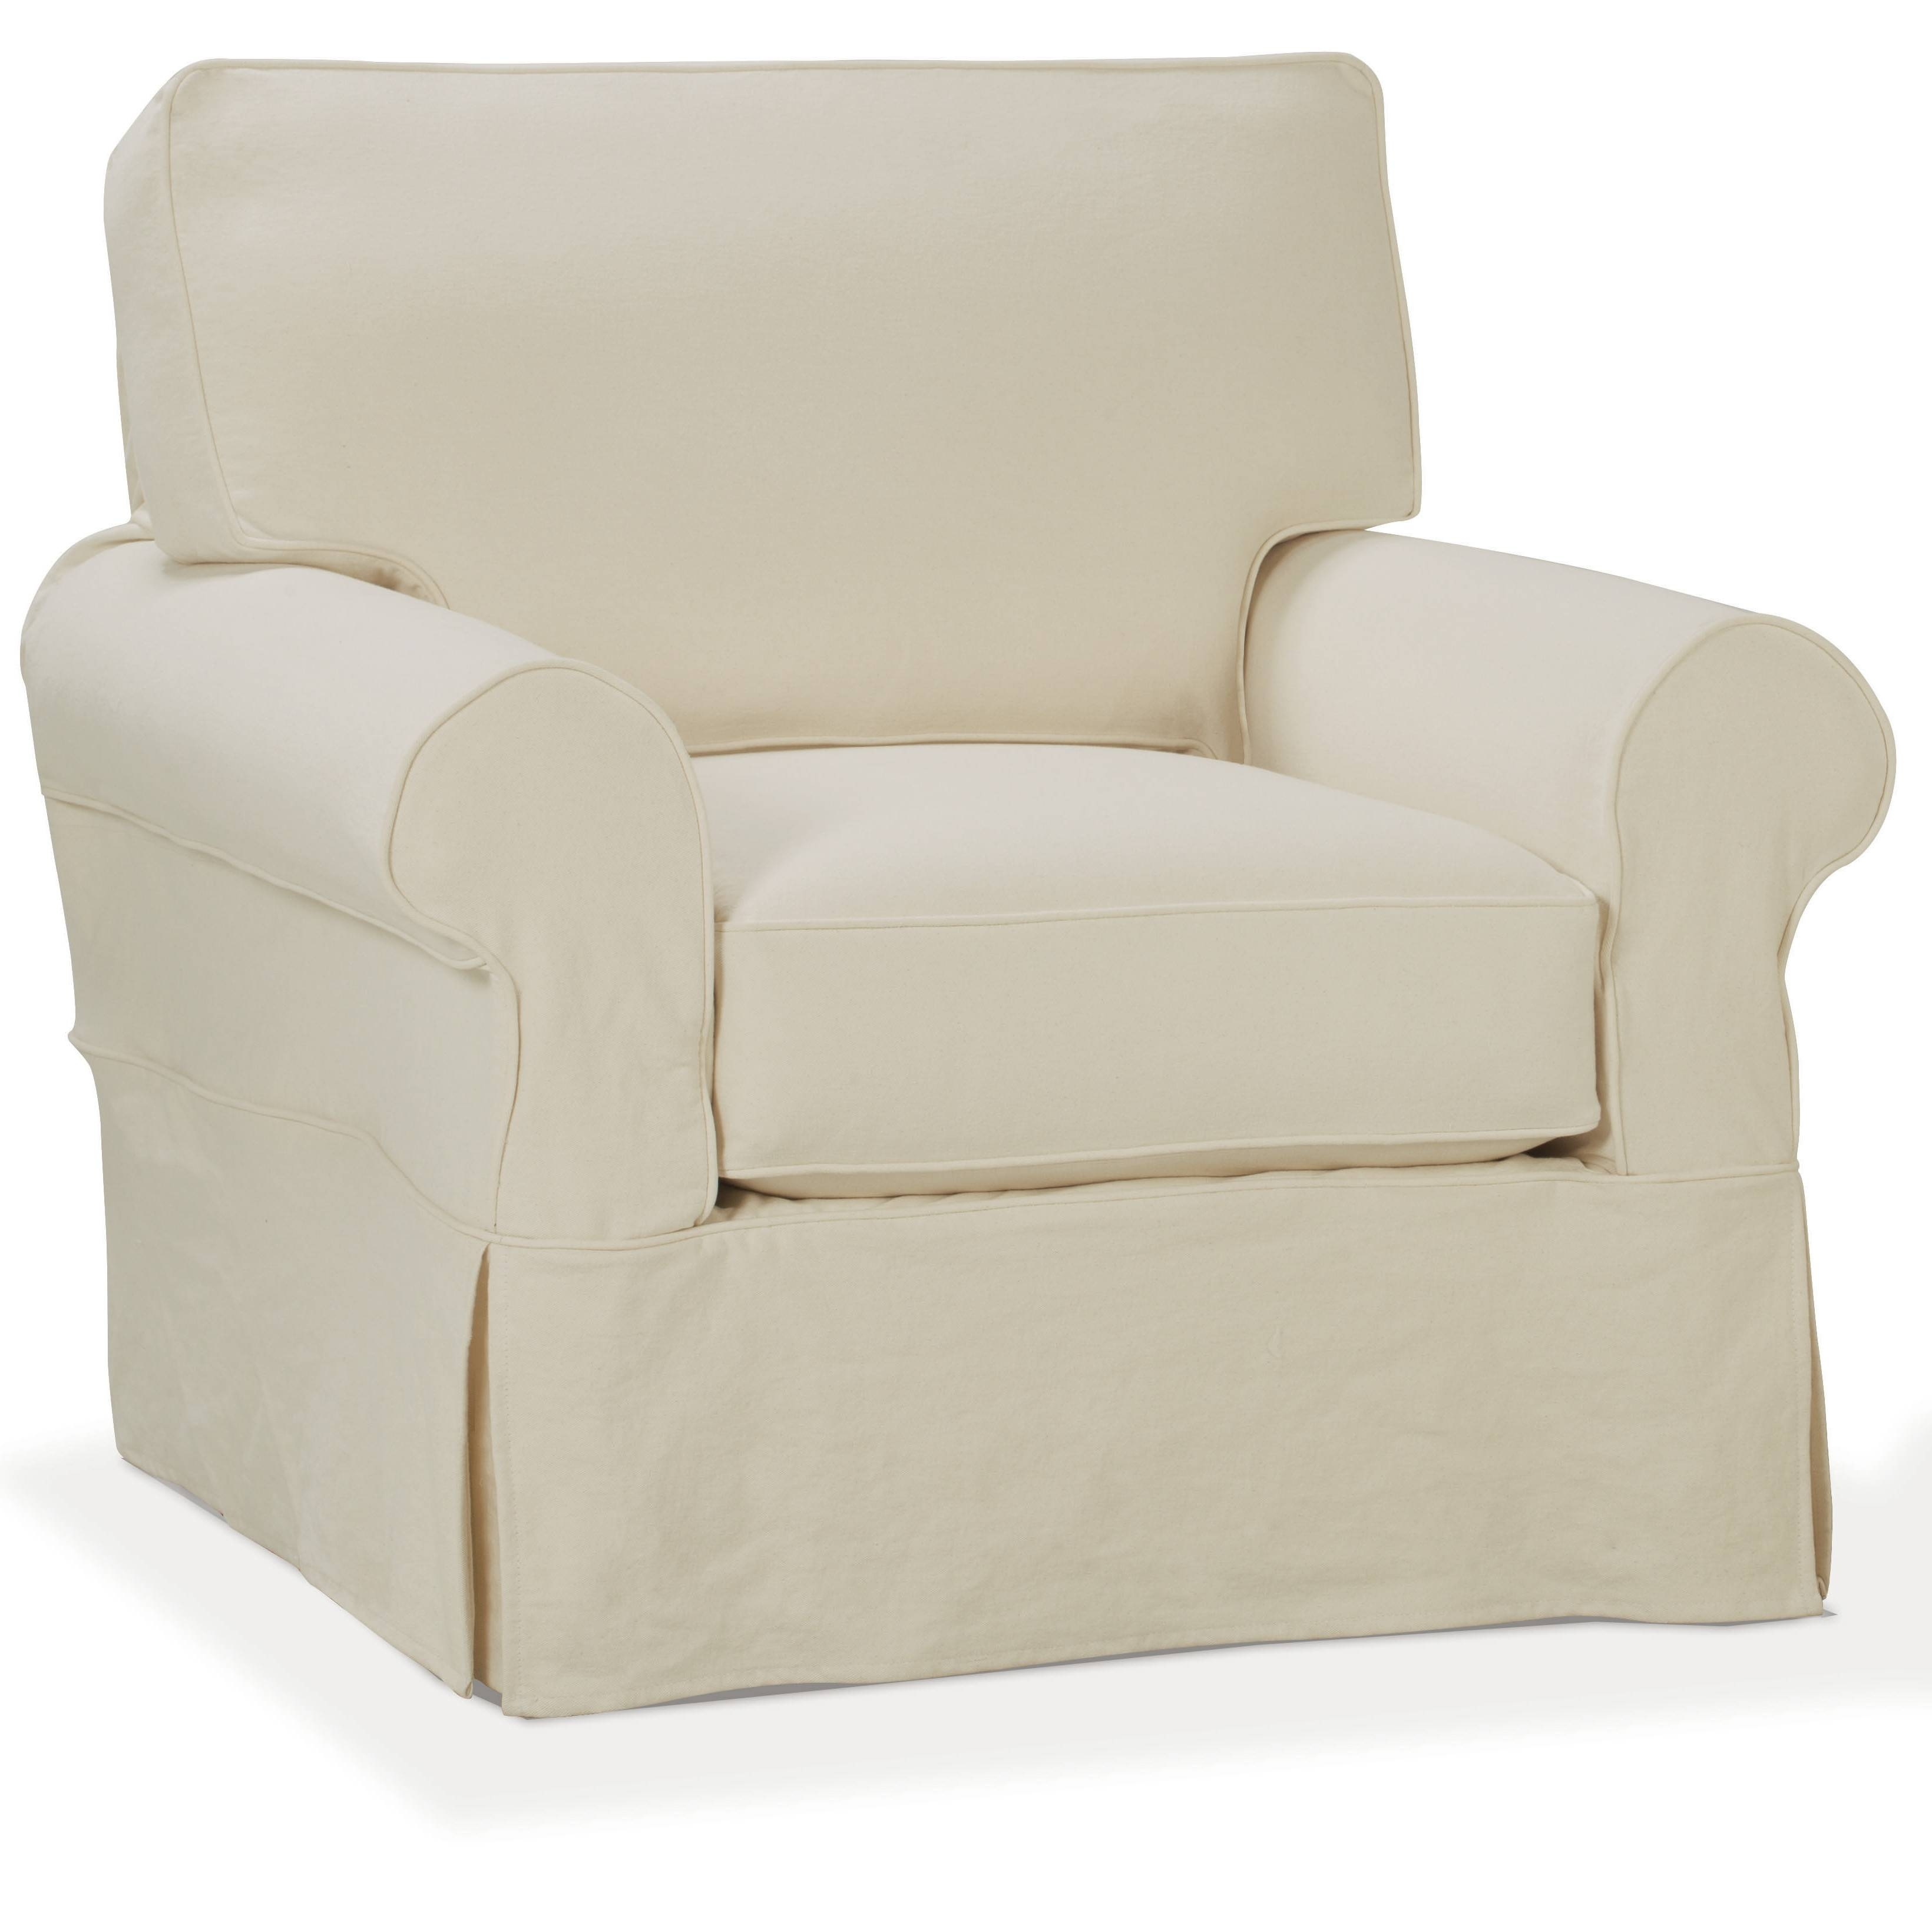 Furniture & Rug: Rowe Furniture Slipcovers | Slipcover Sectional regarding Rowe Slipcovers (Image 7 of 15)